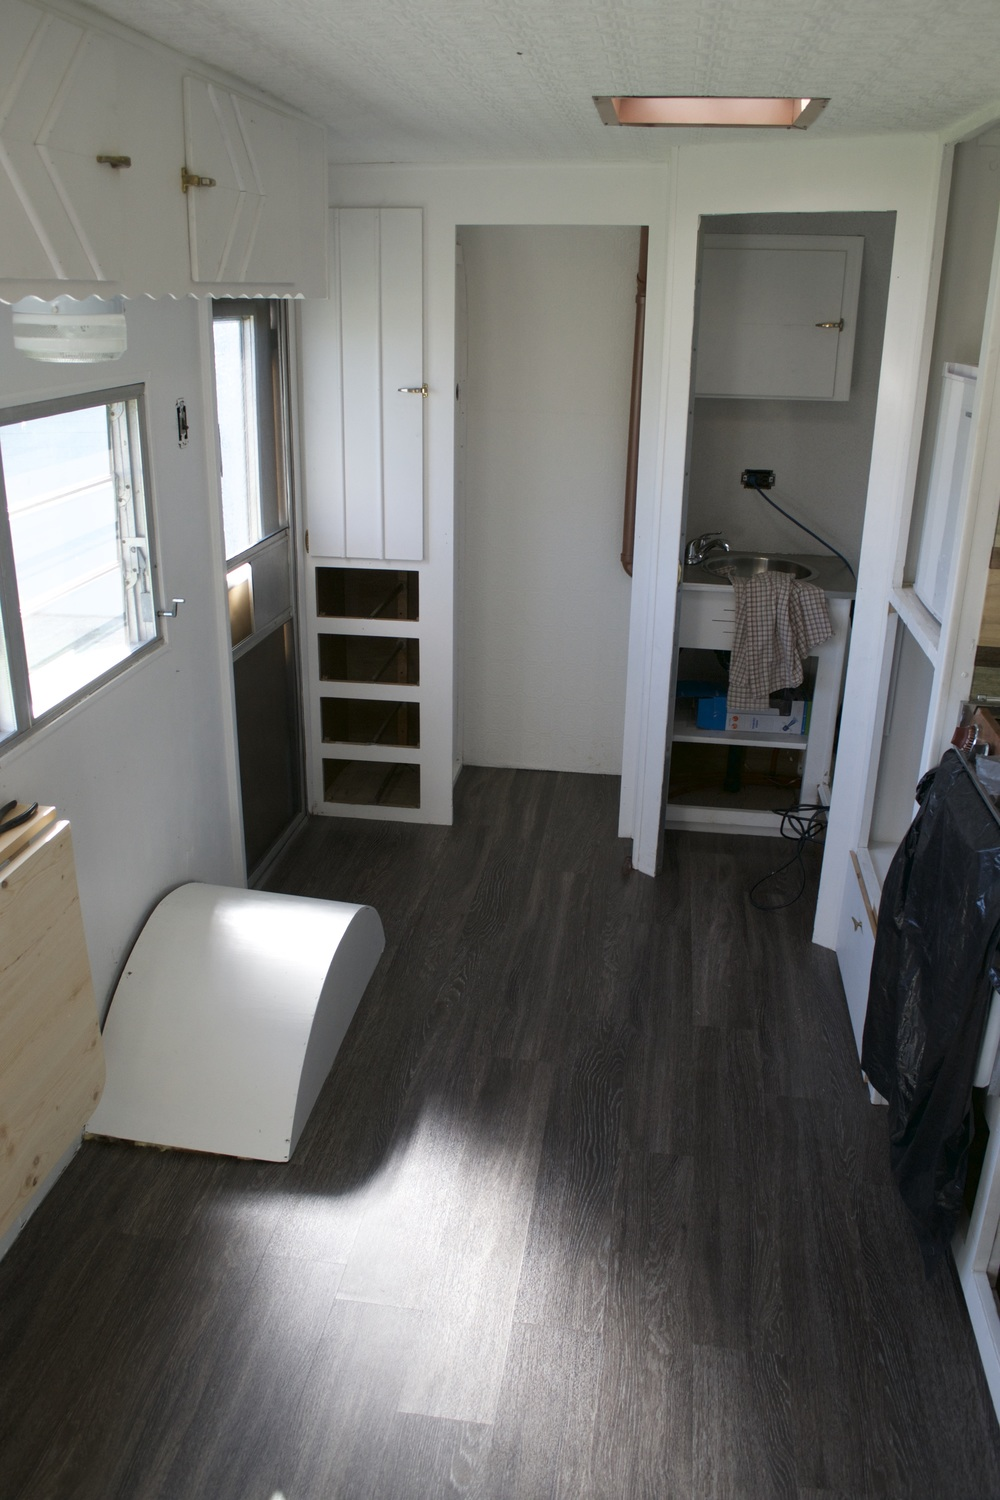 Reasons to install vinyl plank flooring in your trailer or rv vinyl plank flooring was both aesthetically pleasing and functional the perfect compromise dailygadgetfo Choice Image